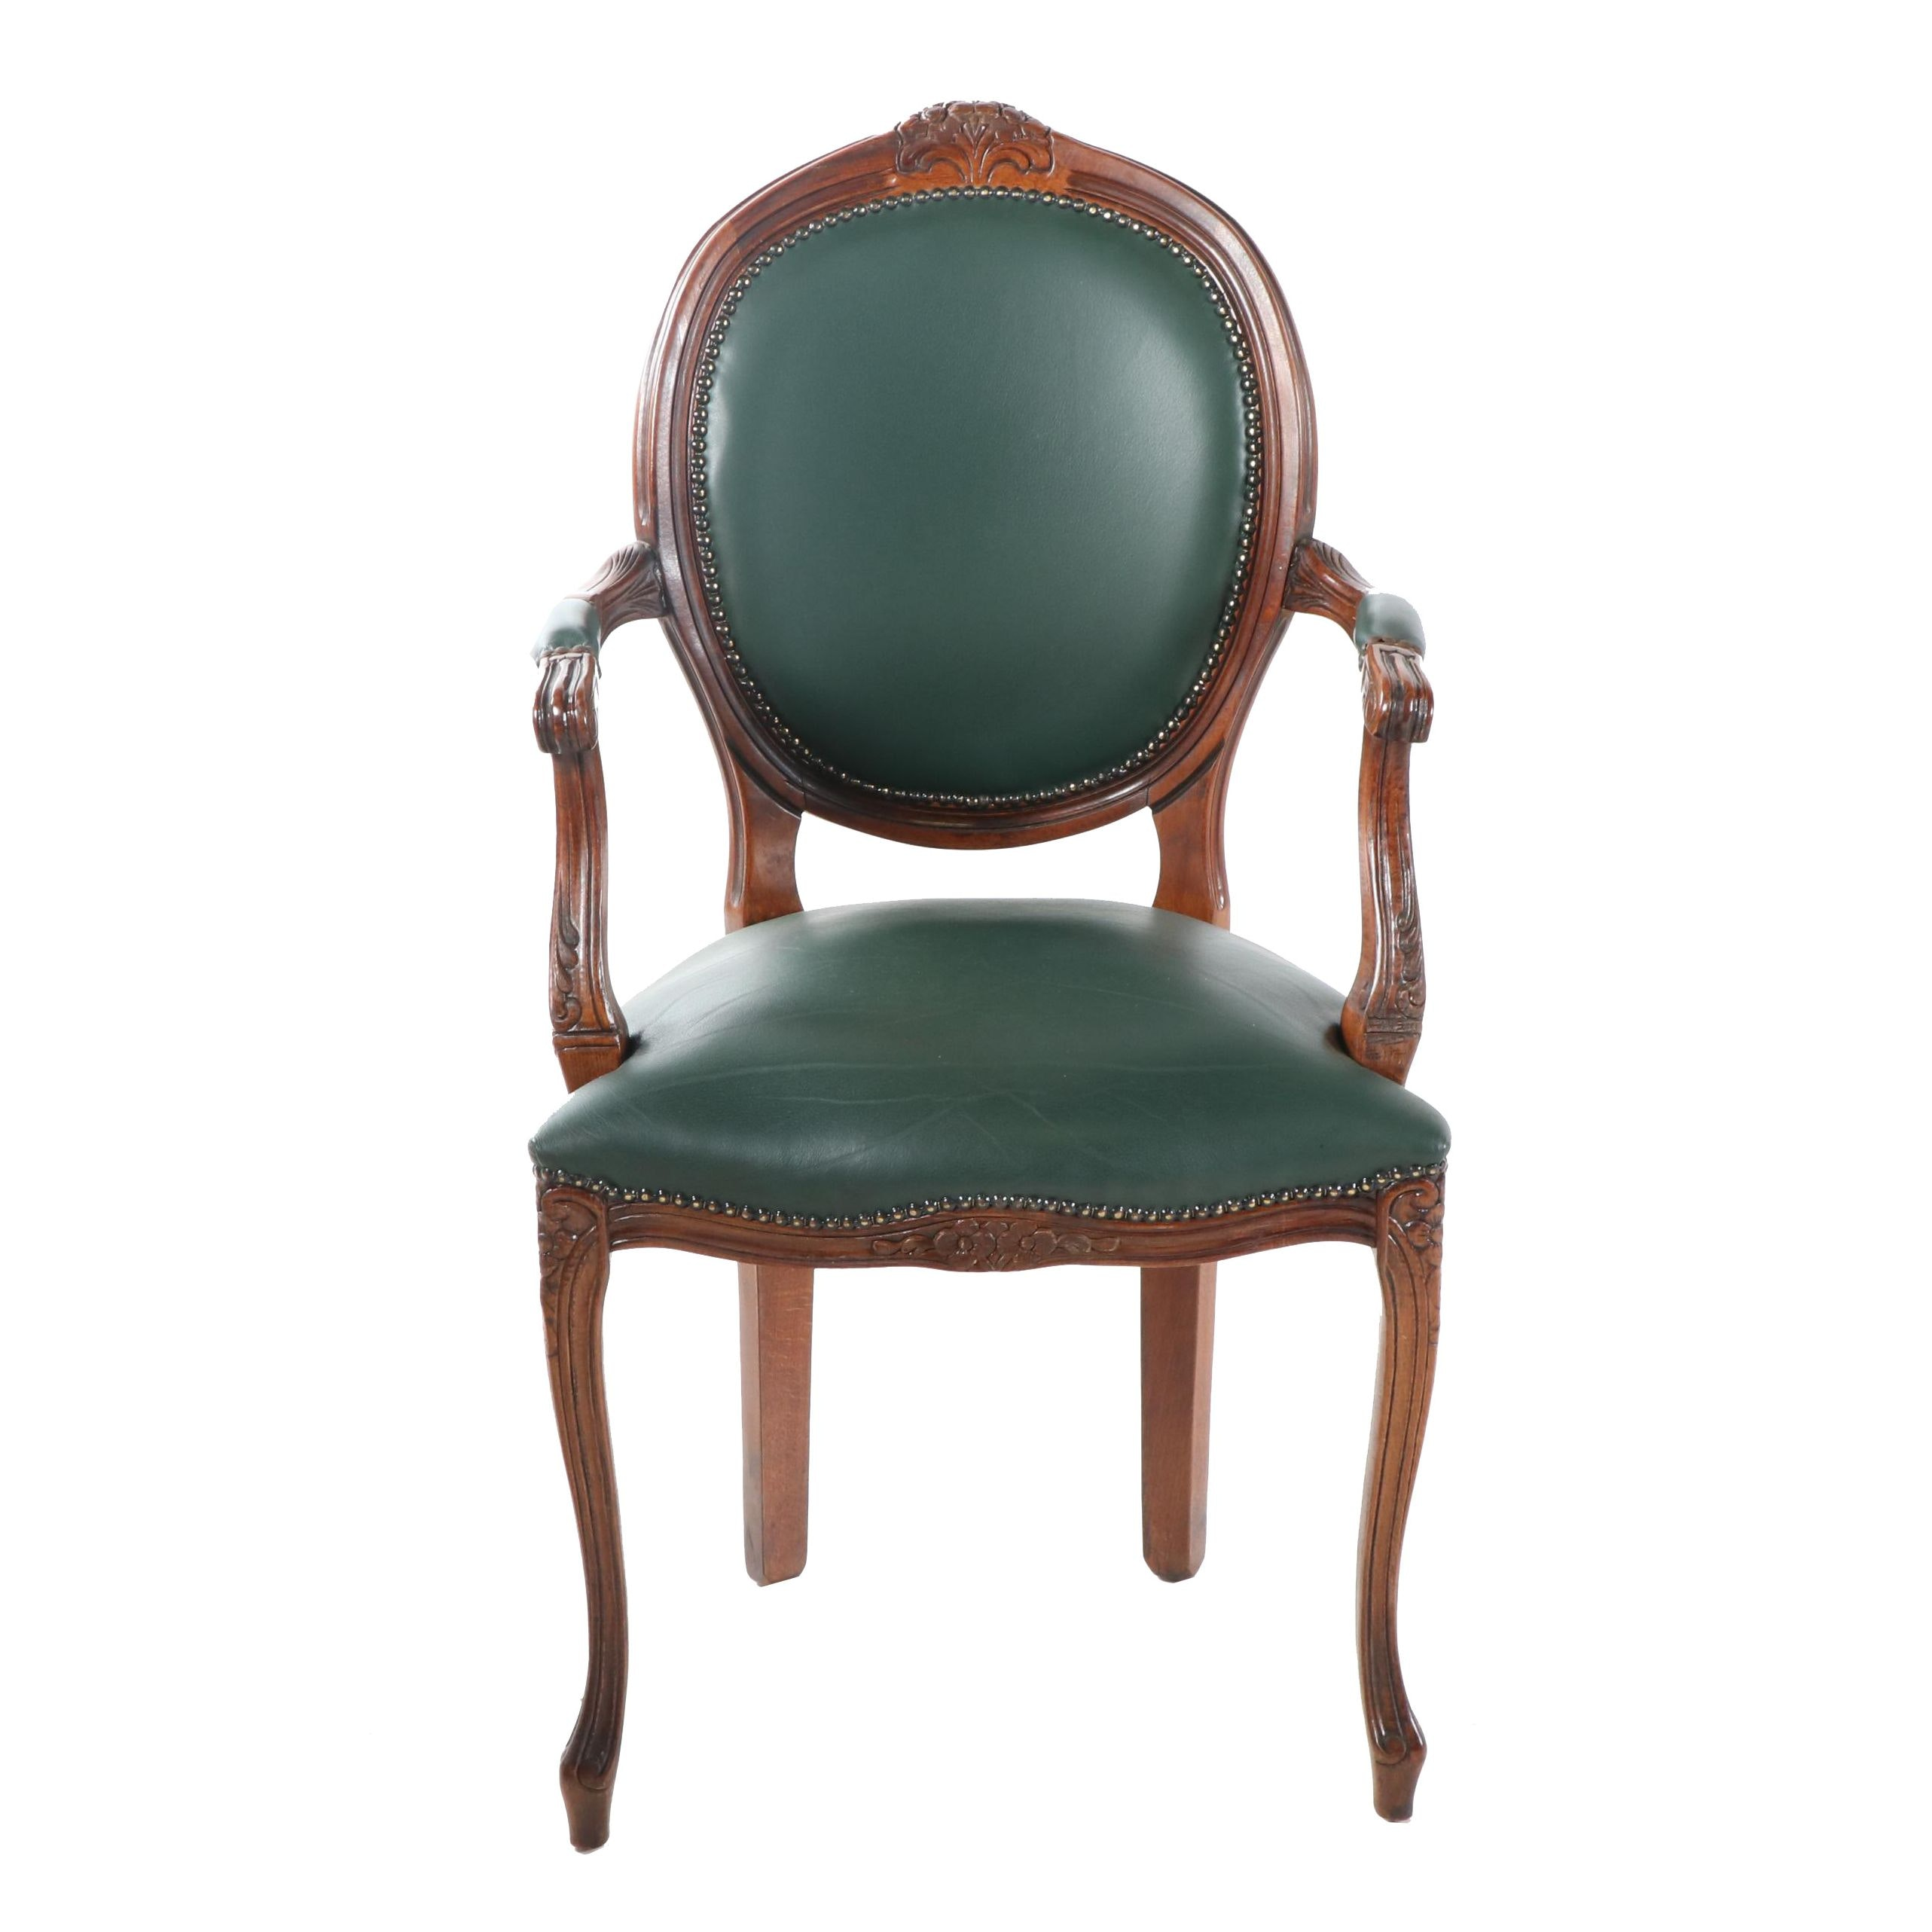 French Provincial Style Carved Wood Frame Leather Upholstered Armchair, 20th C.